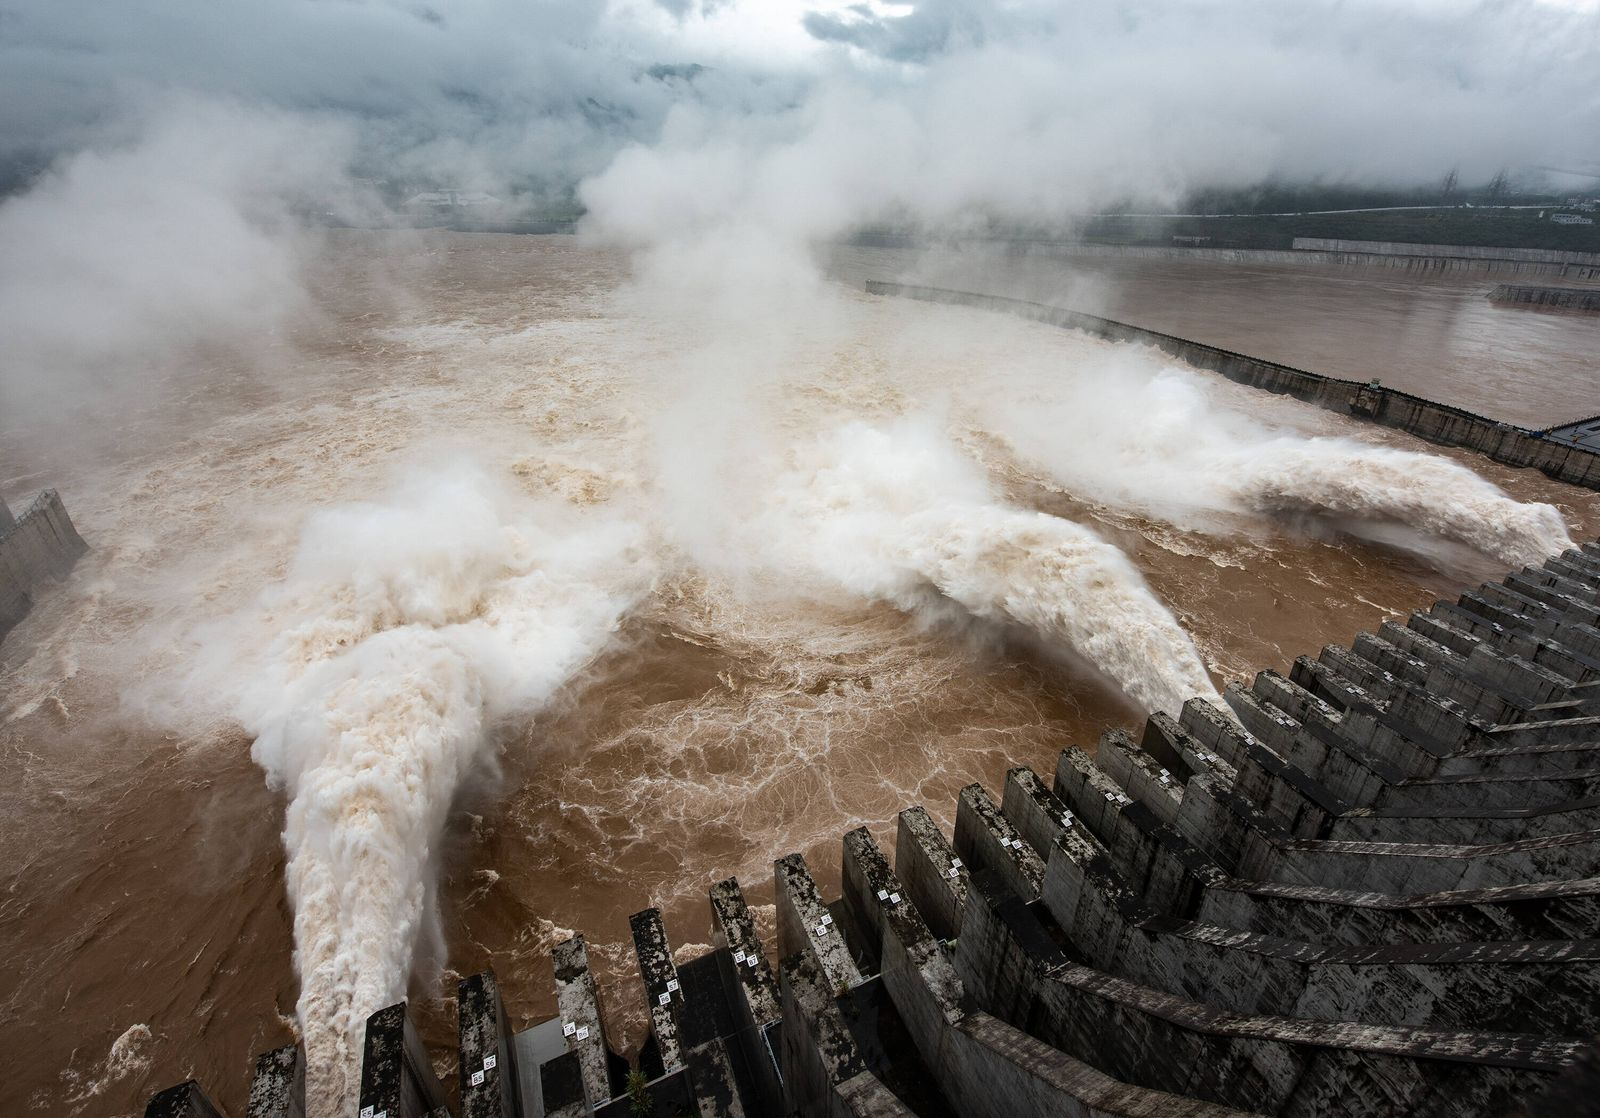 (200718) -- YICHANG, July 18, 2020 -- Photo taken on July 18, 2020 shows the Three Gorges Dam opening the floodgates to